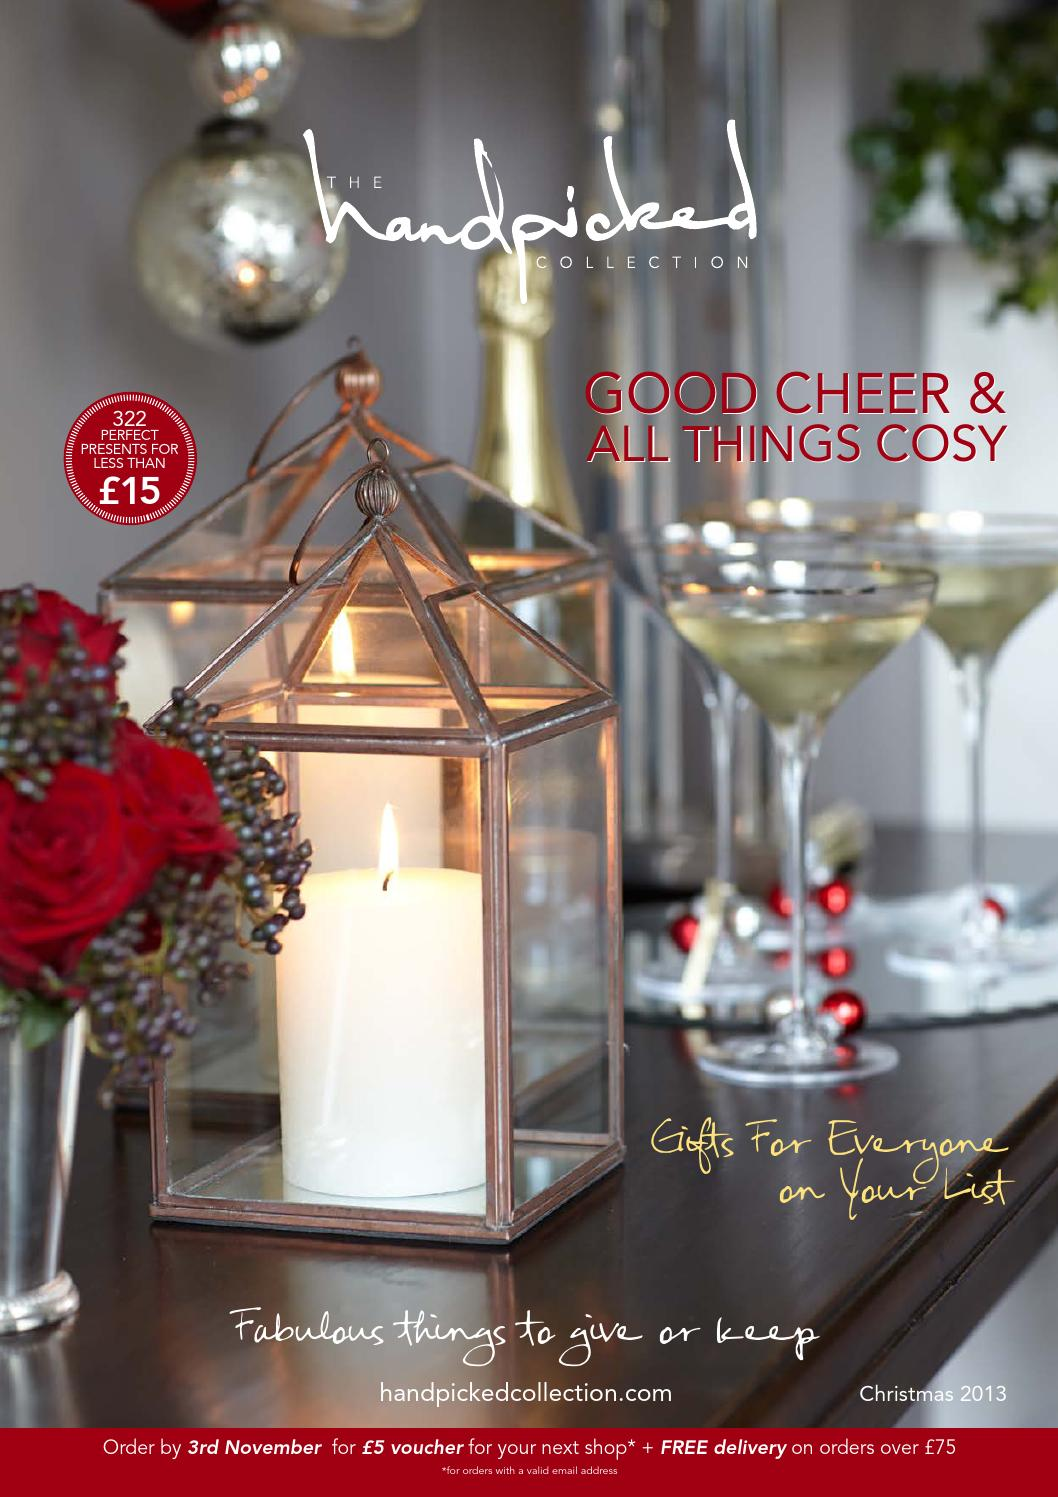 c24cc506c68dd The Handpicked Collection s Christmas Catalogue 2013 by Heather King - issuu